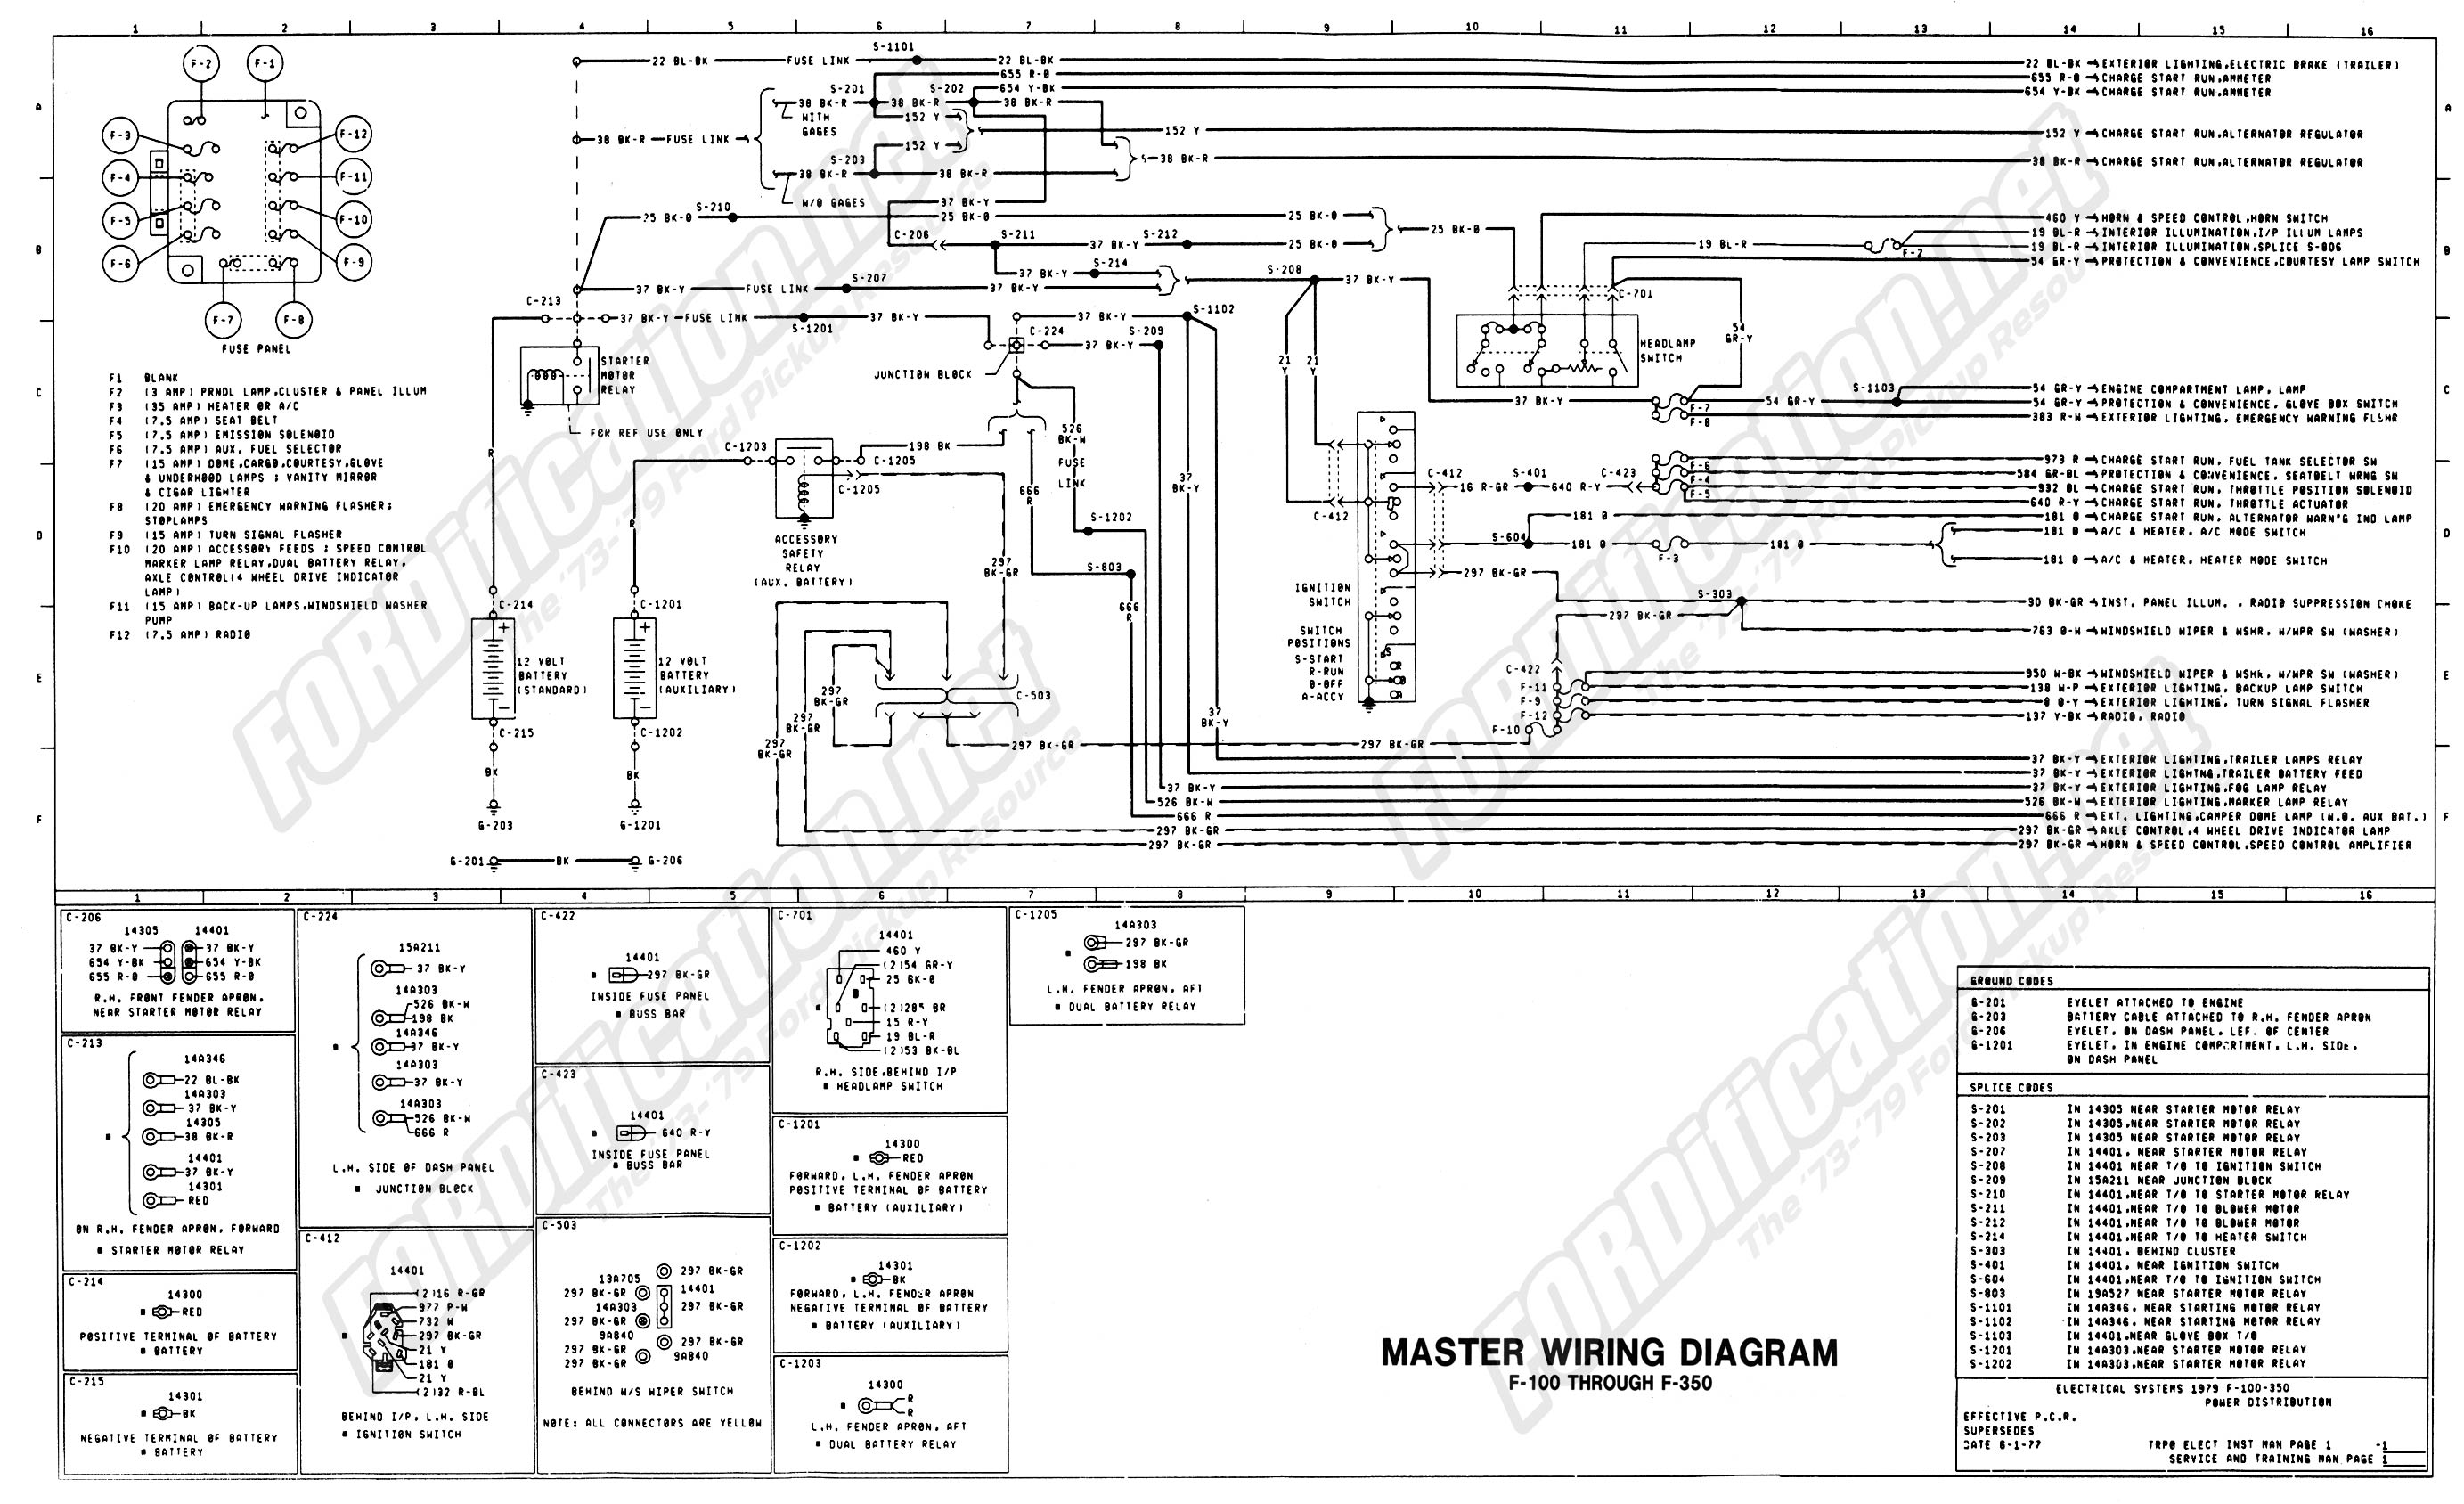 wiring_79master_1of9 1973 1979 ford truck wiring diagrams & schematics fordification net 1979 Corvette Fuse Box Diagram at virtualis.co